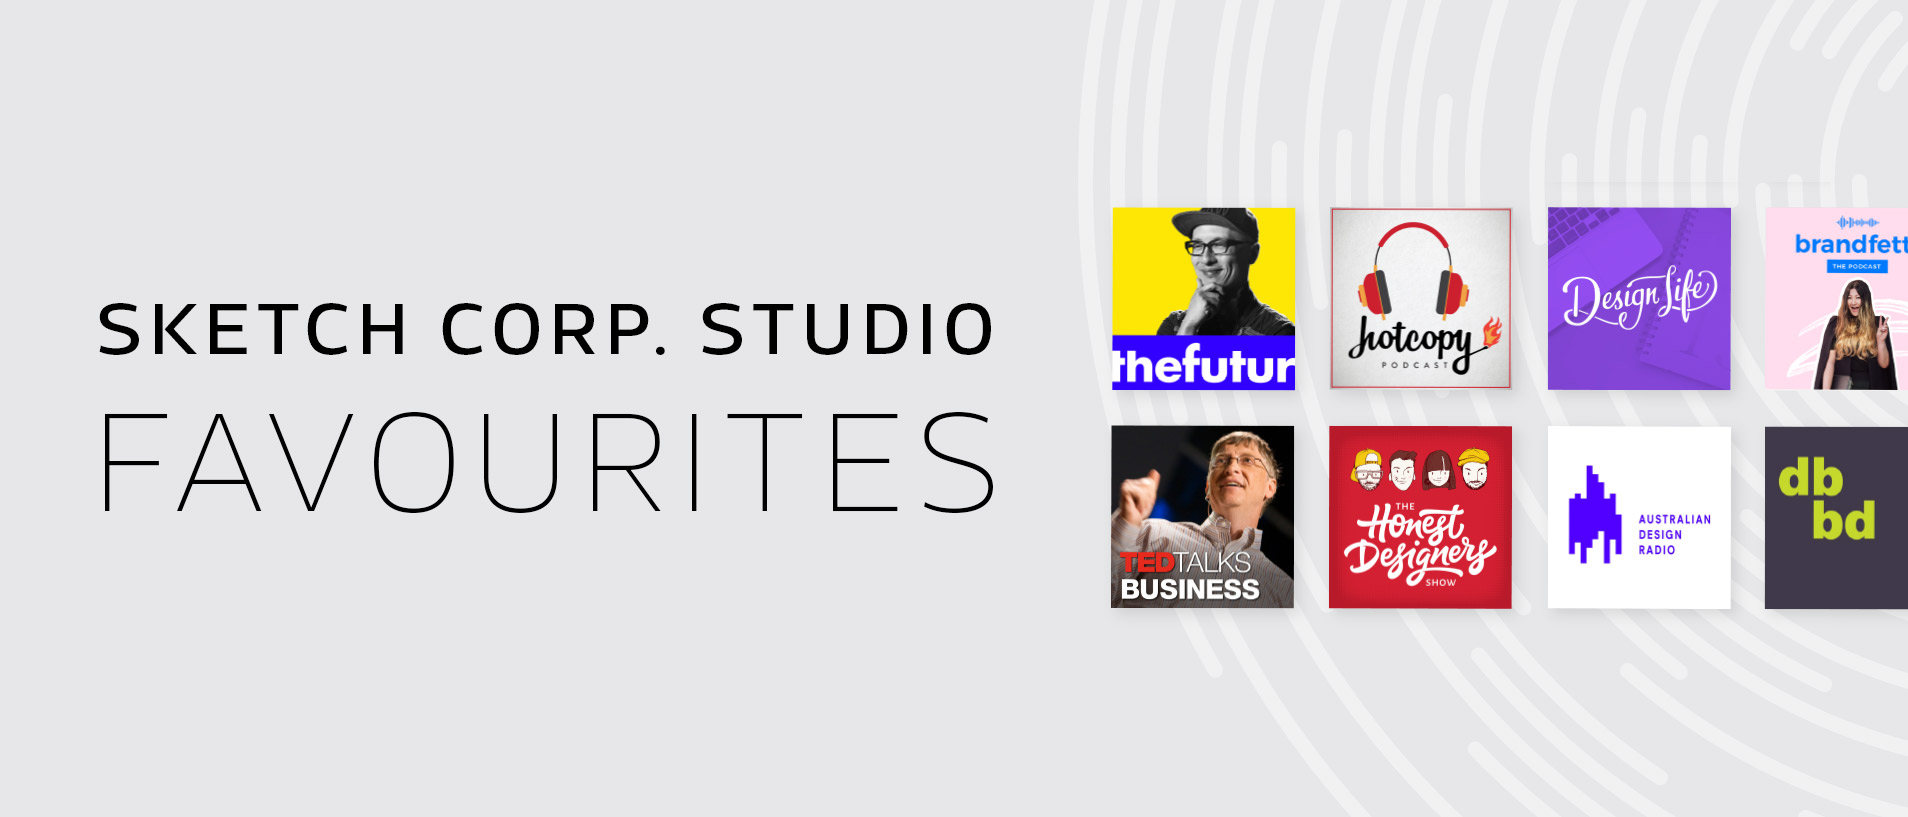 sketch corp studio favourite podcasts recommendations